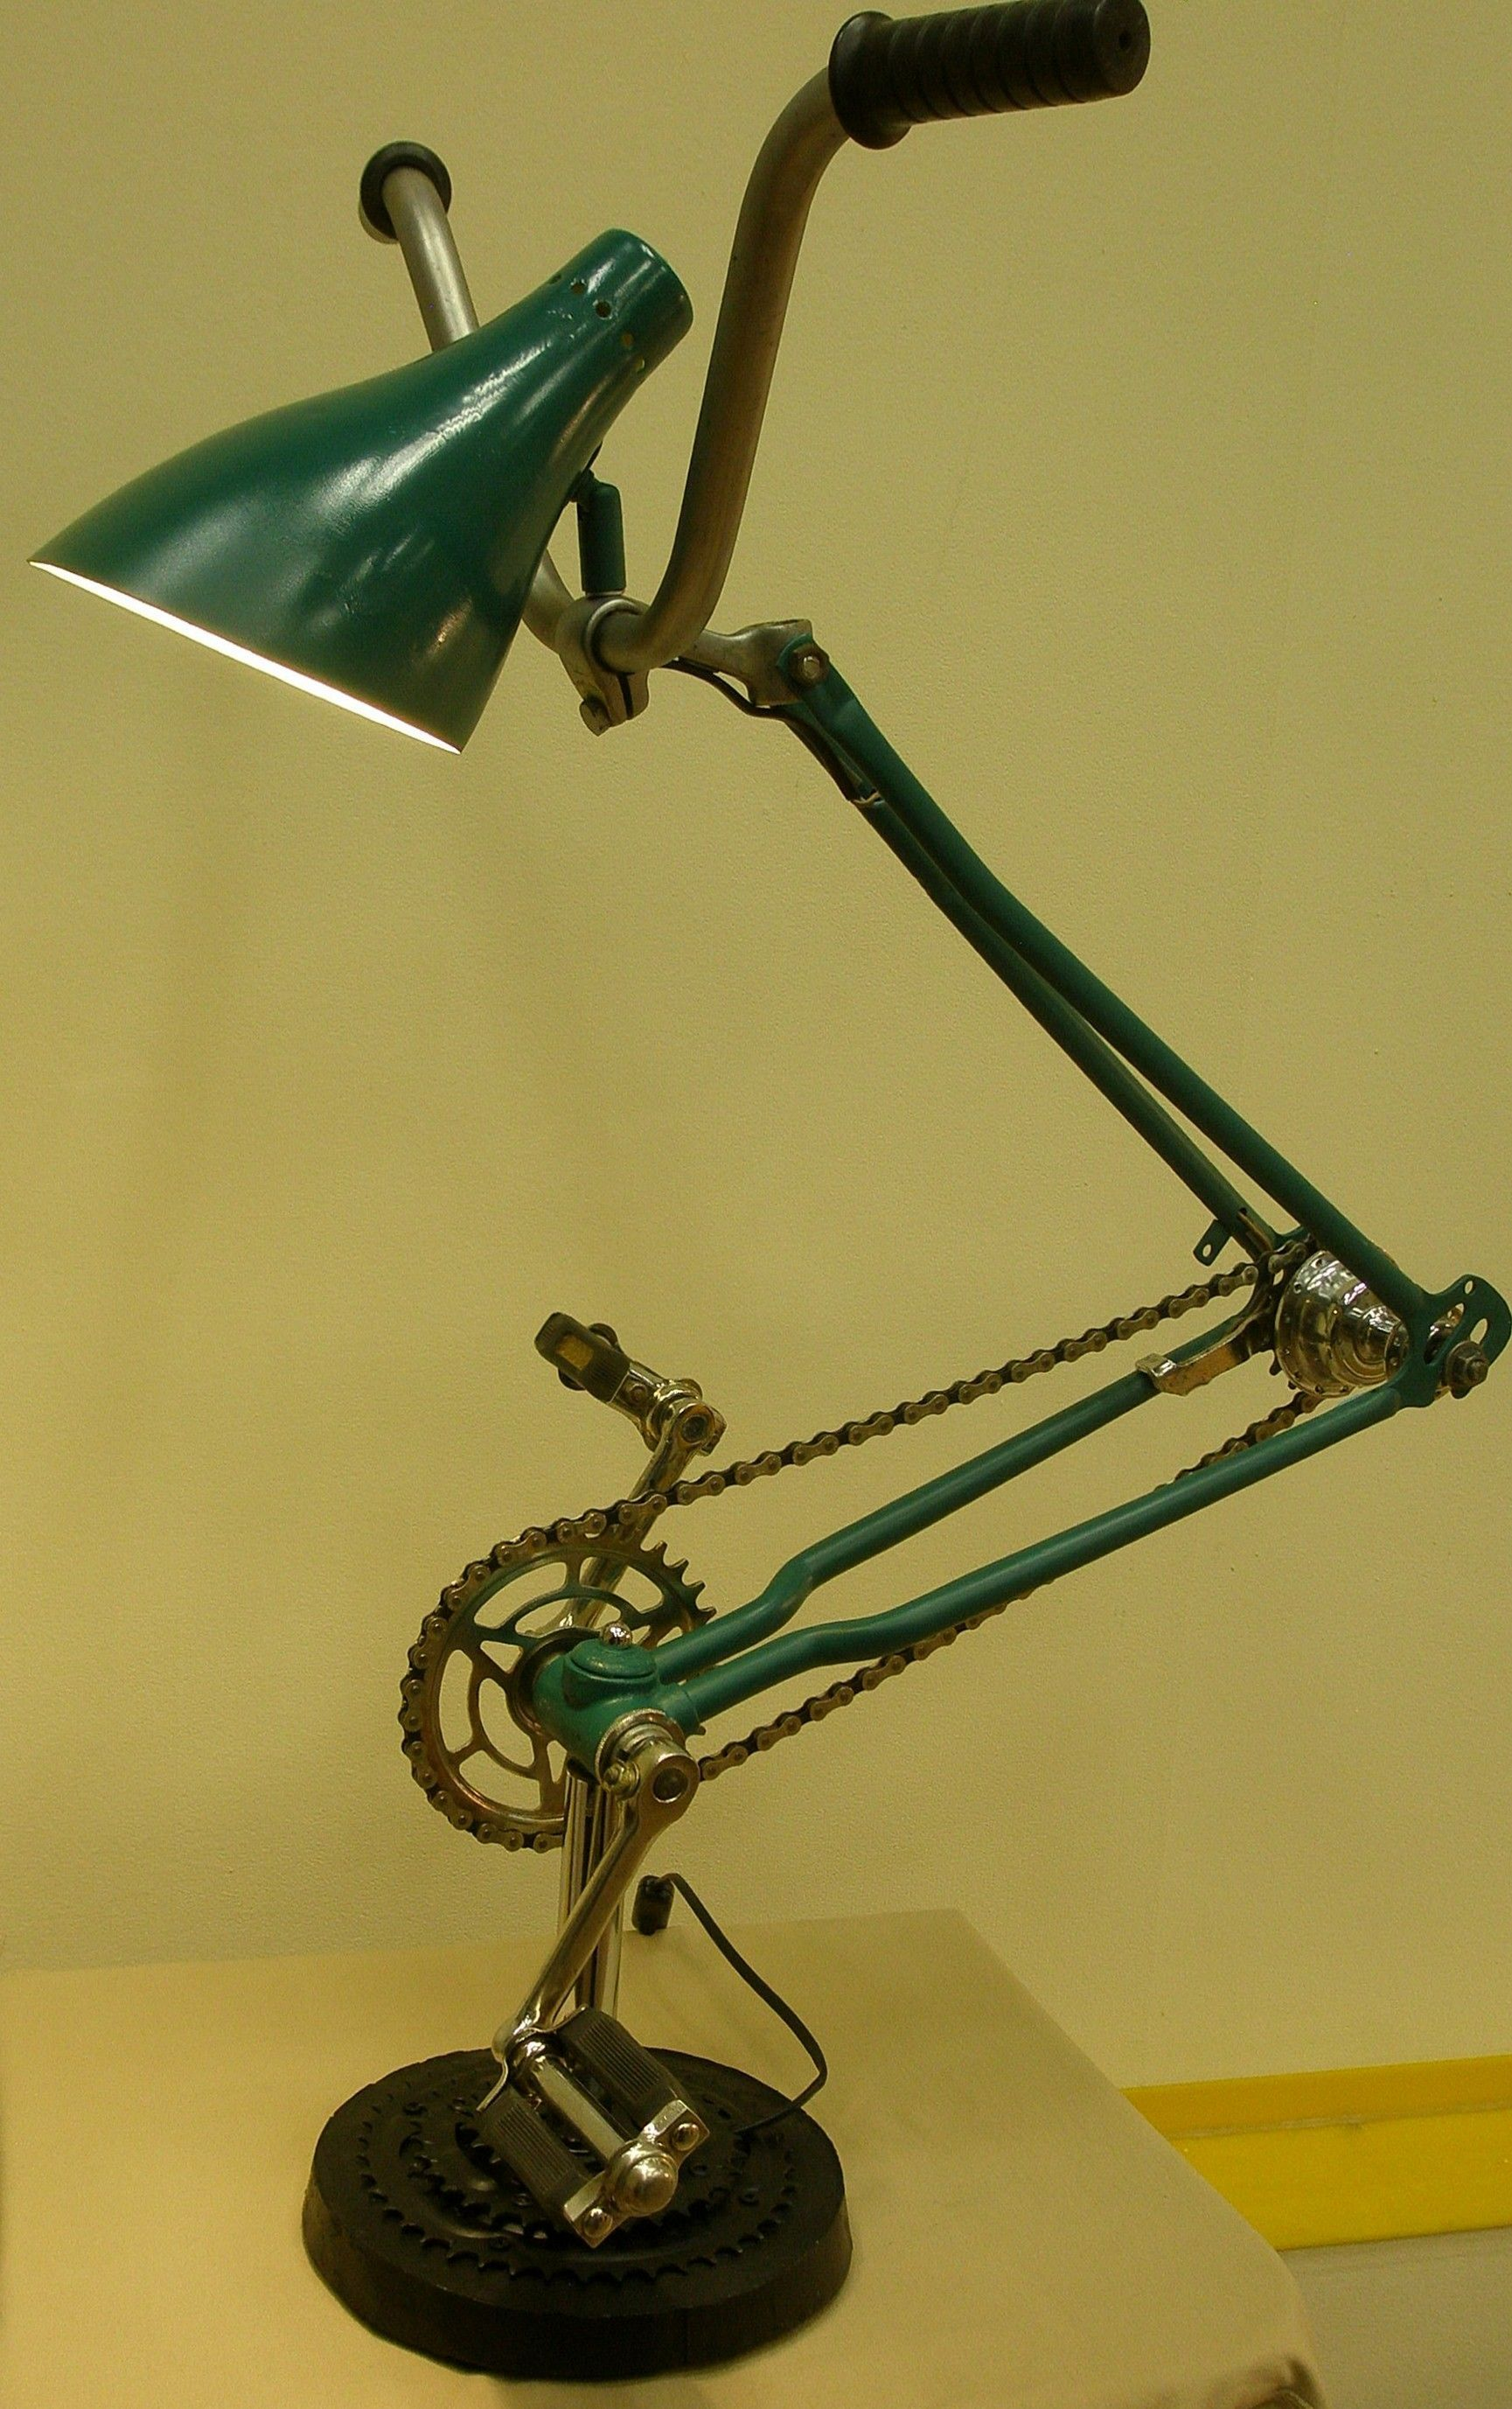 Lamp From A Bicycle Schoolchild Pedals Turn In 2020 Fiets